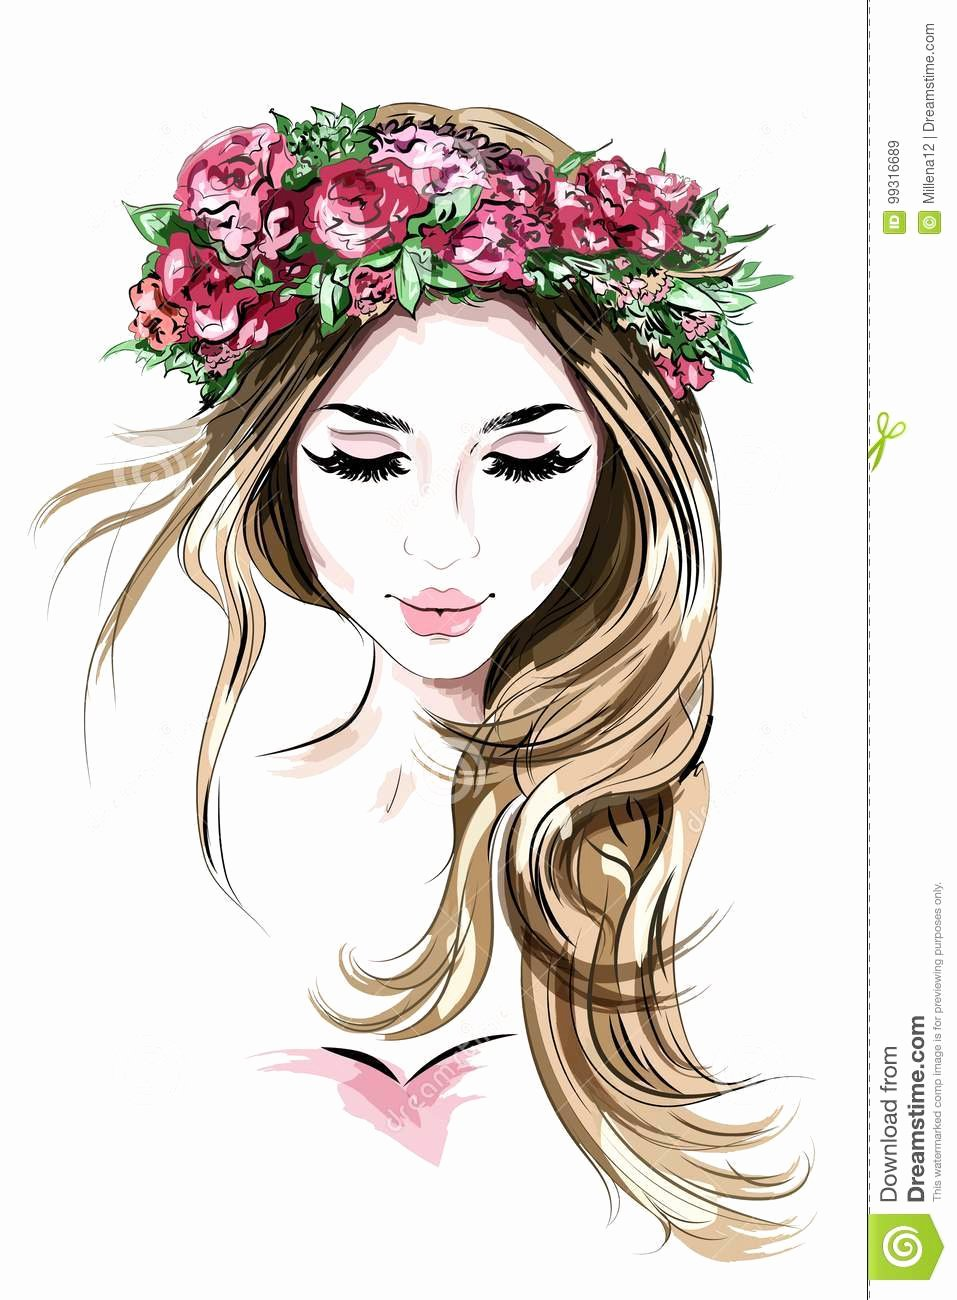 Drawing Of Beautiful Girls Fresh Hair Cartoons Illustrations & Vector Stock to From